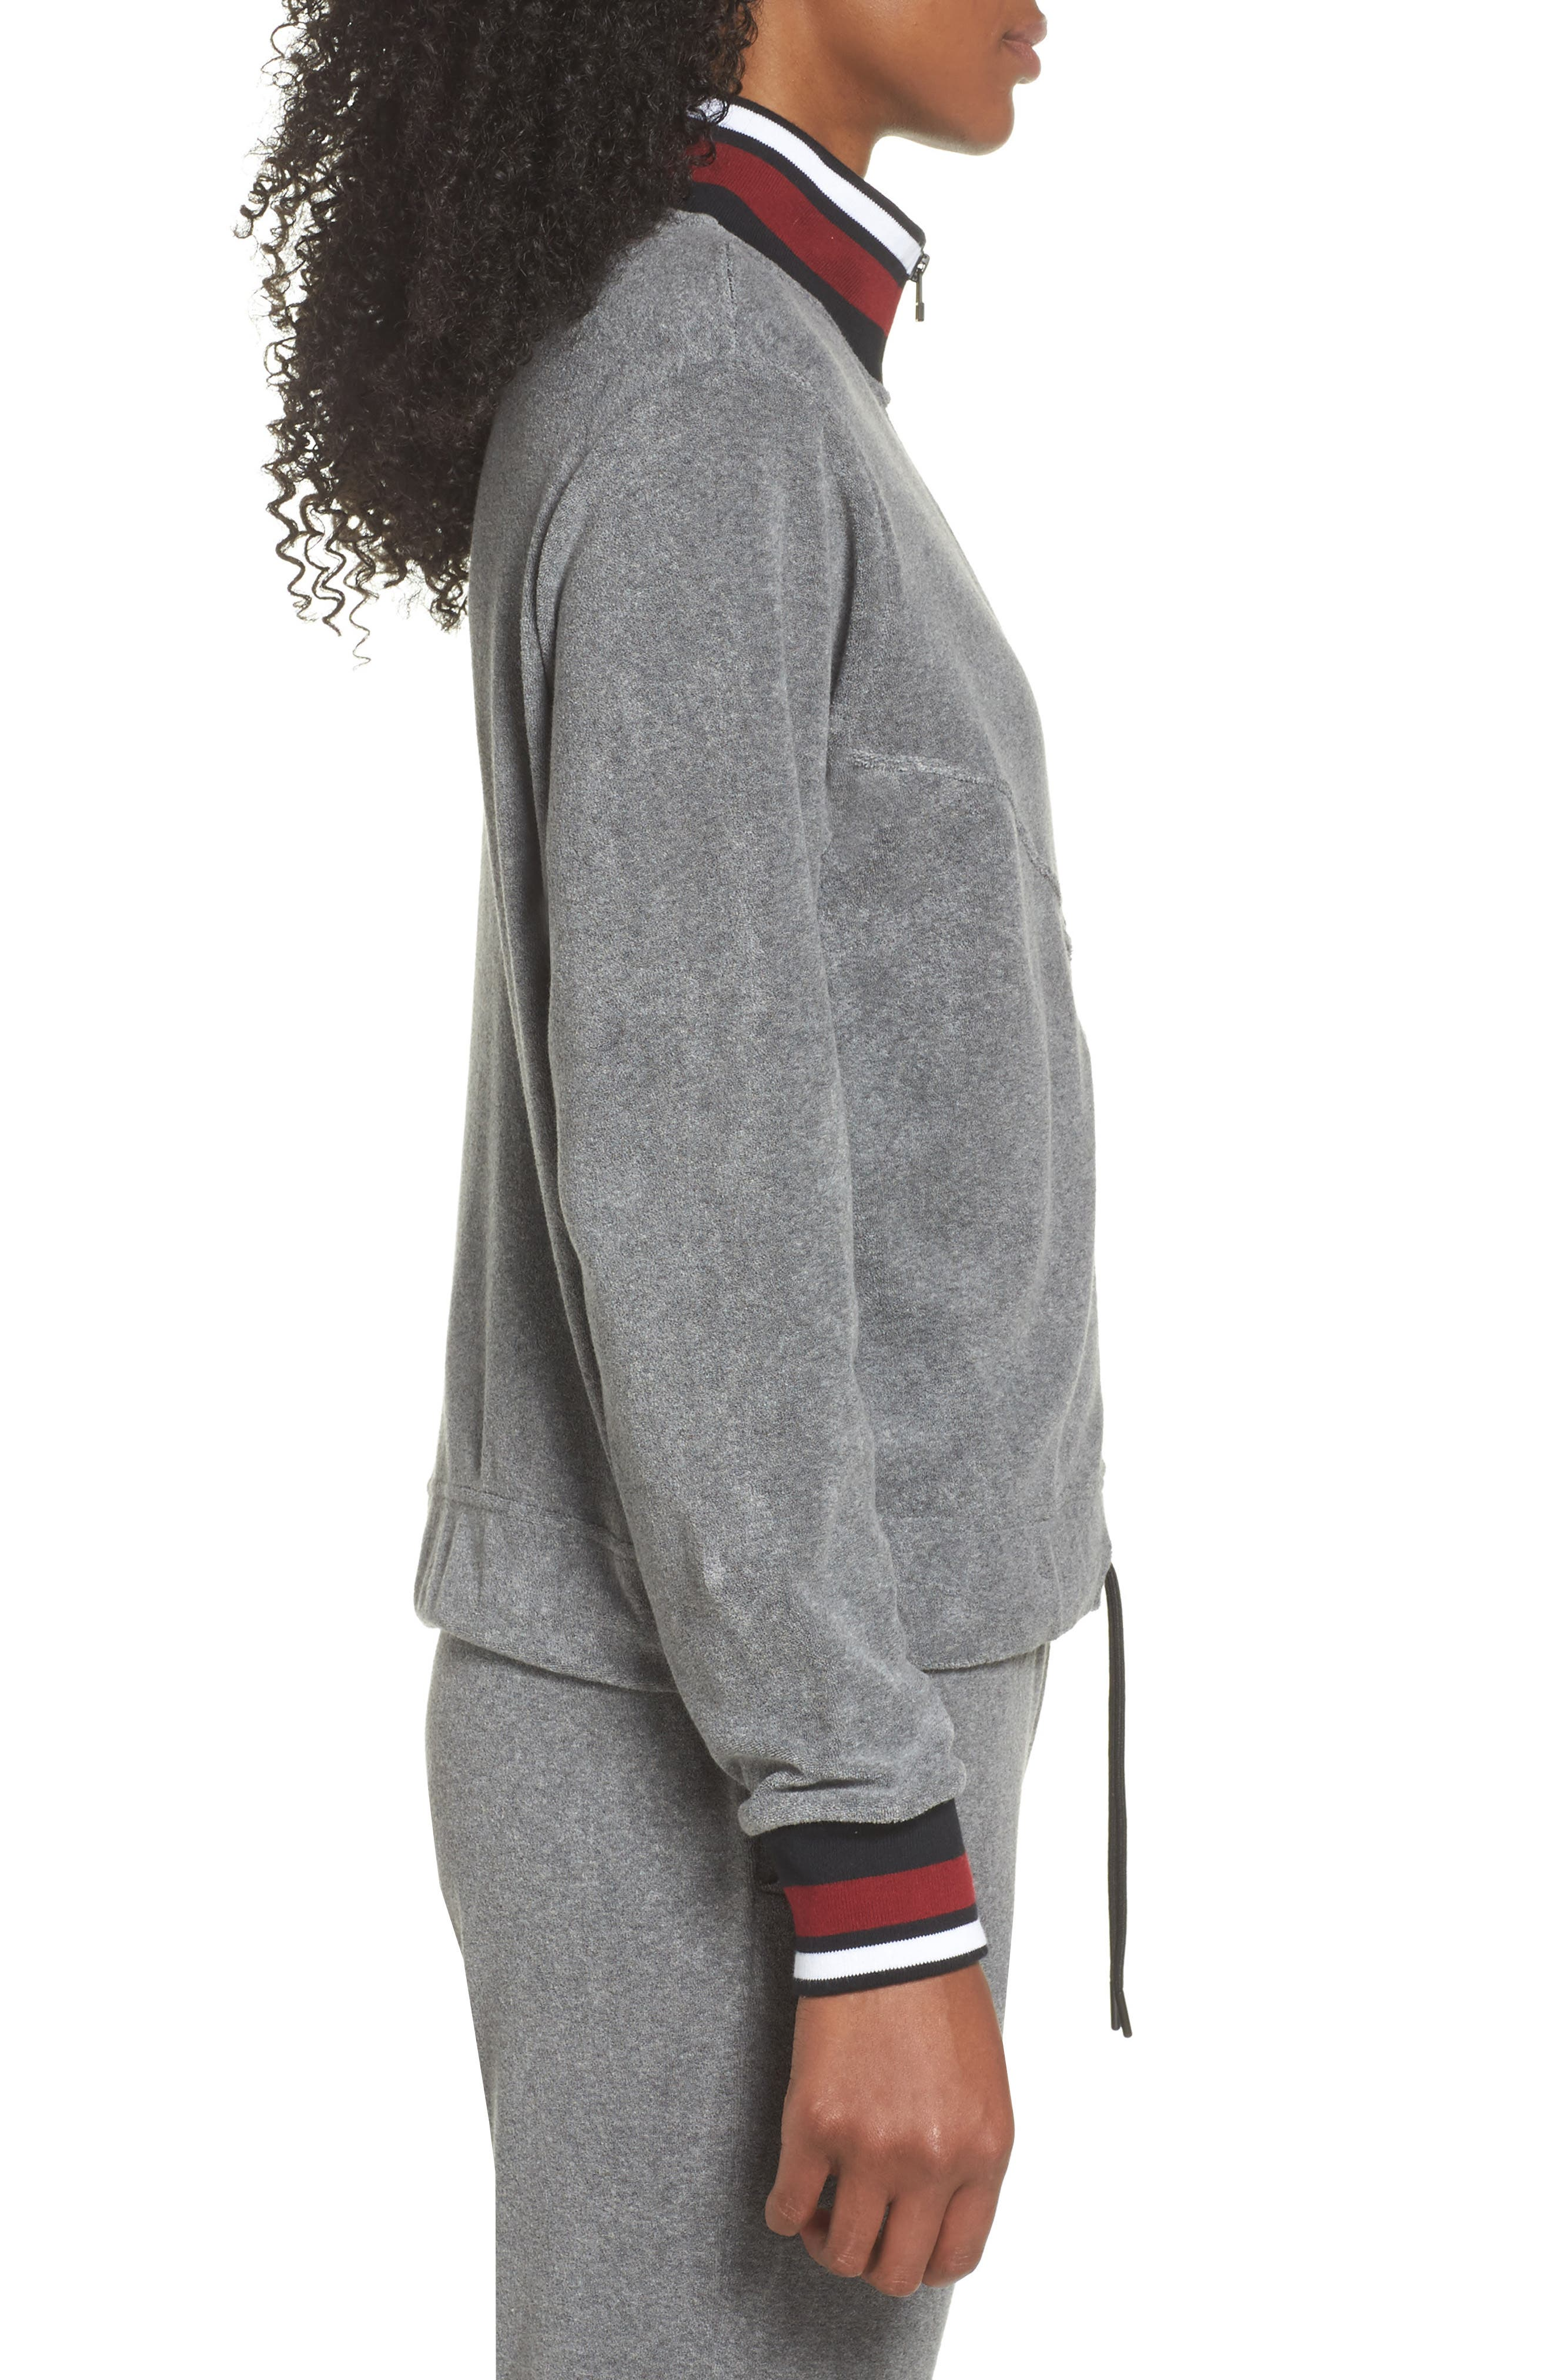 Sportswear French Terry Jacket,                             Alternate thumbnail 3, color,                             Heather/ Anthracite/ Team Red